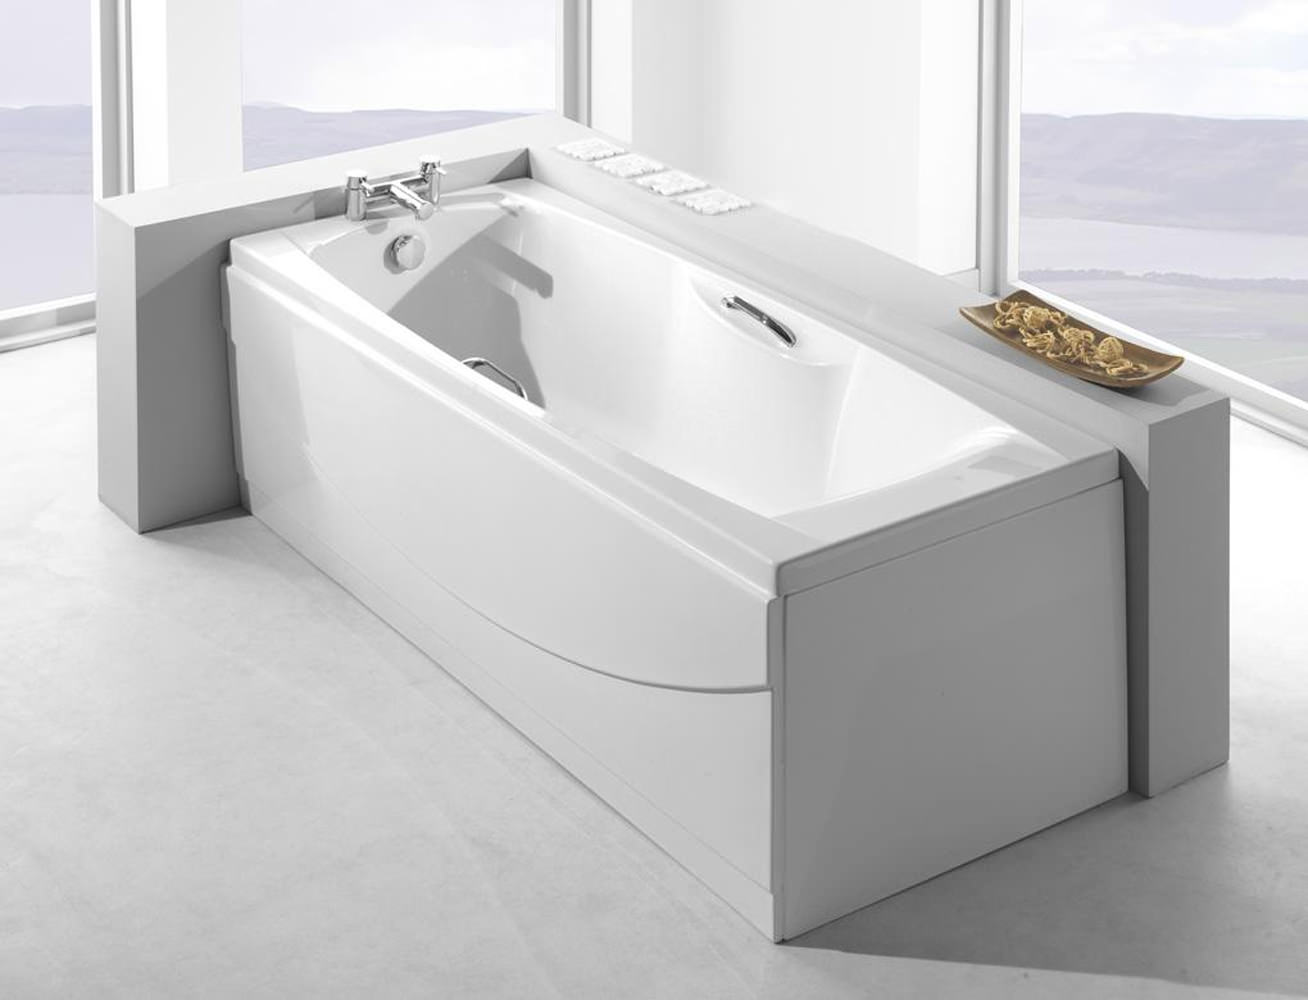 Carron Imperial 5mm Acrylic Bath With Grips 1800 x 750mm